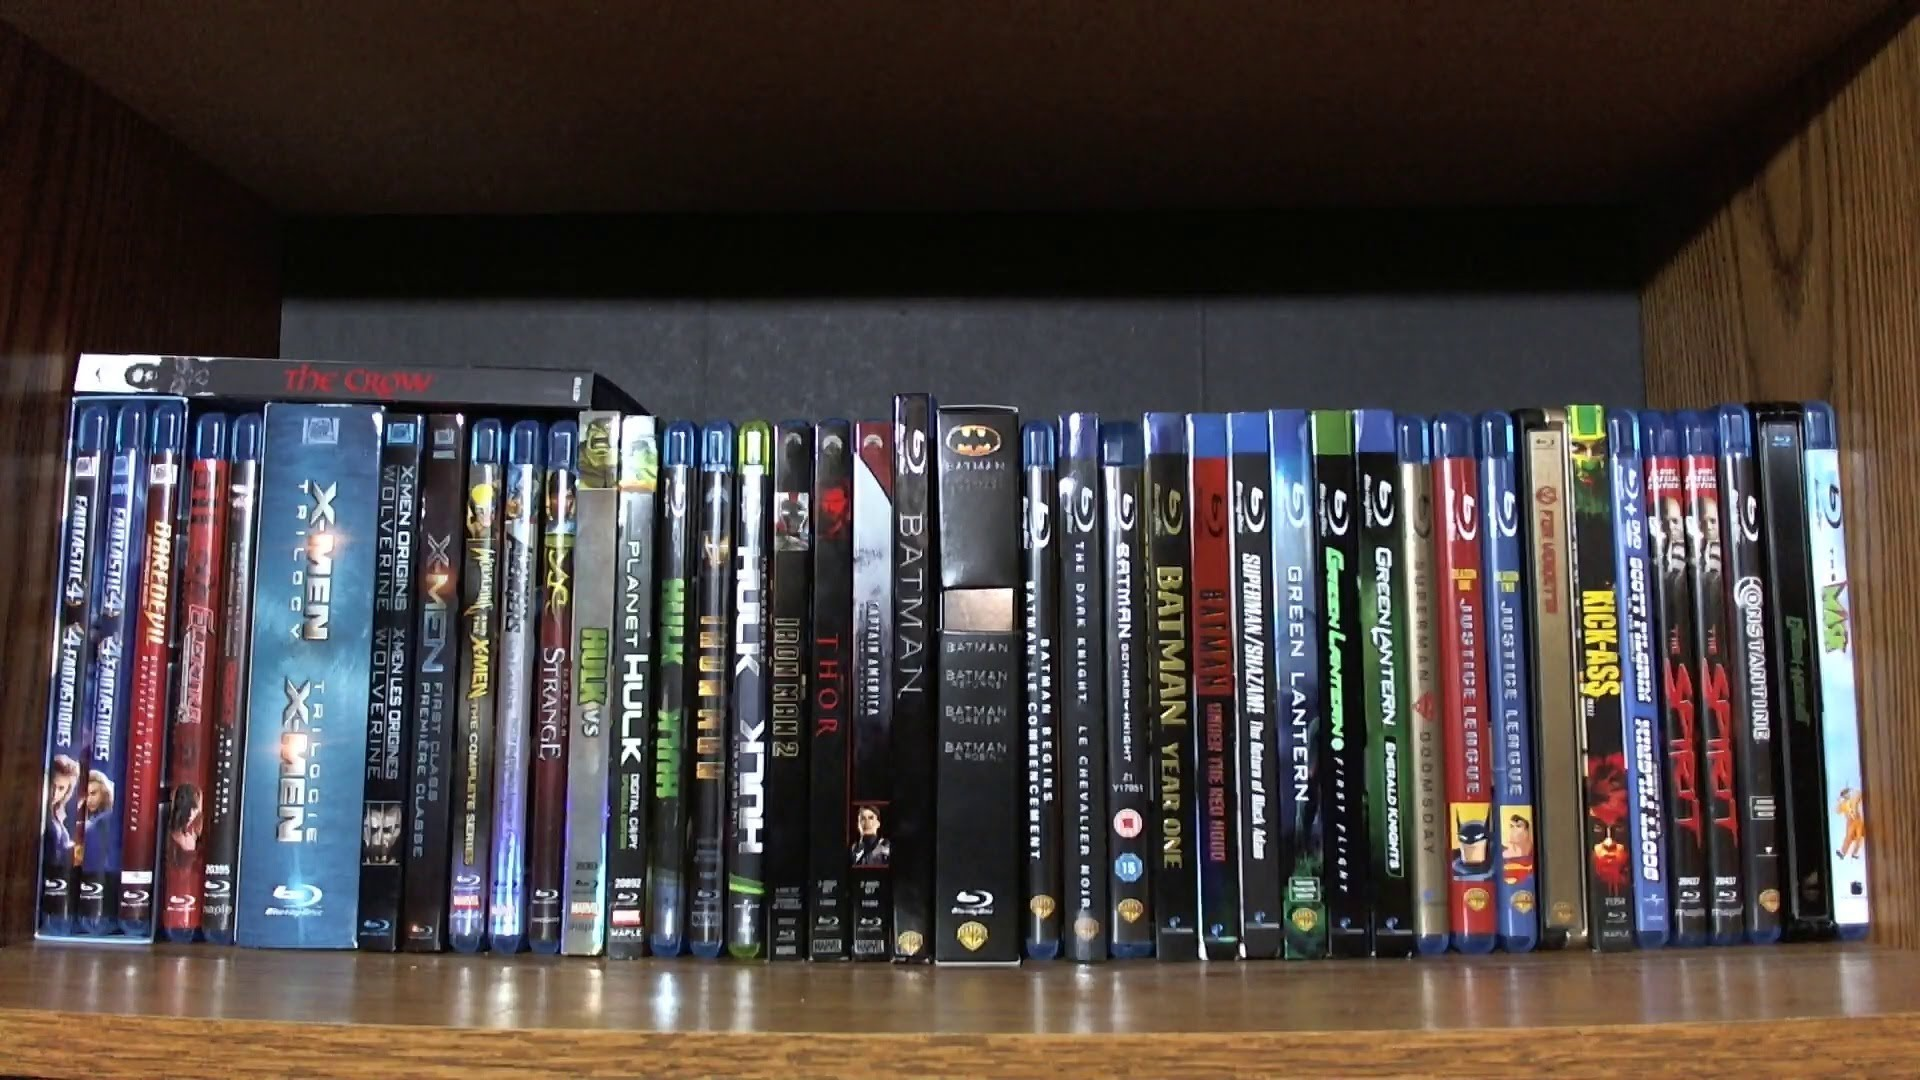 My Comic Book Adaptations on Blu-ray - DVD/Blu-ray Collection ...